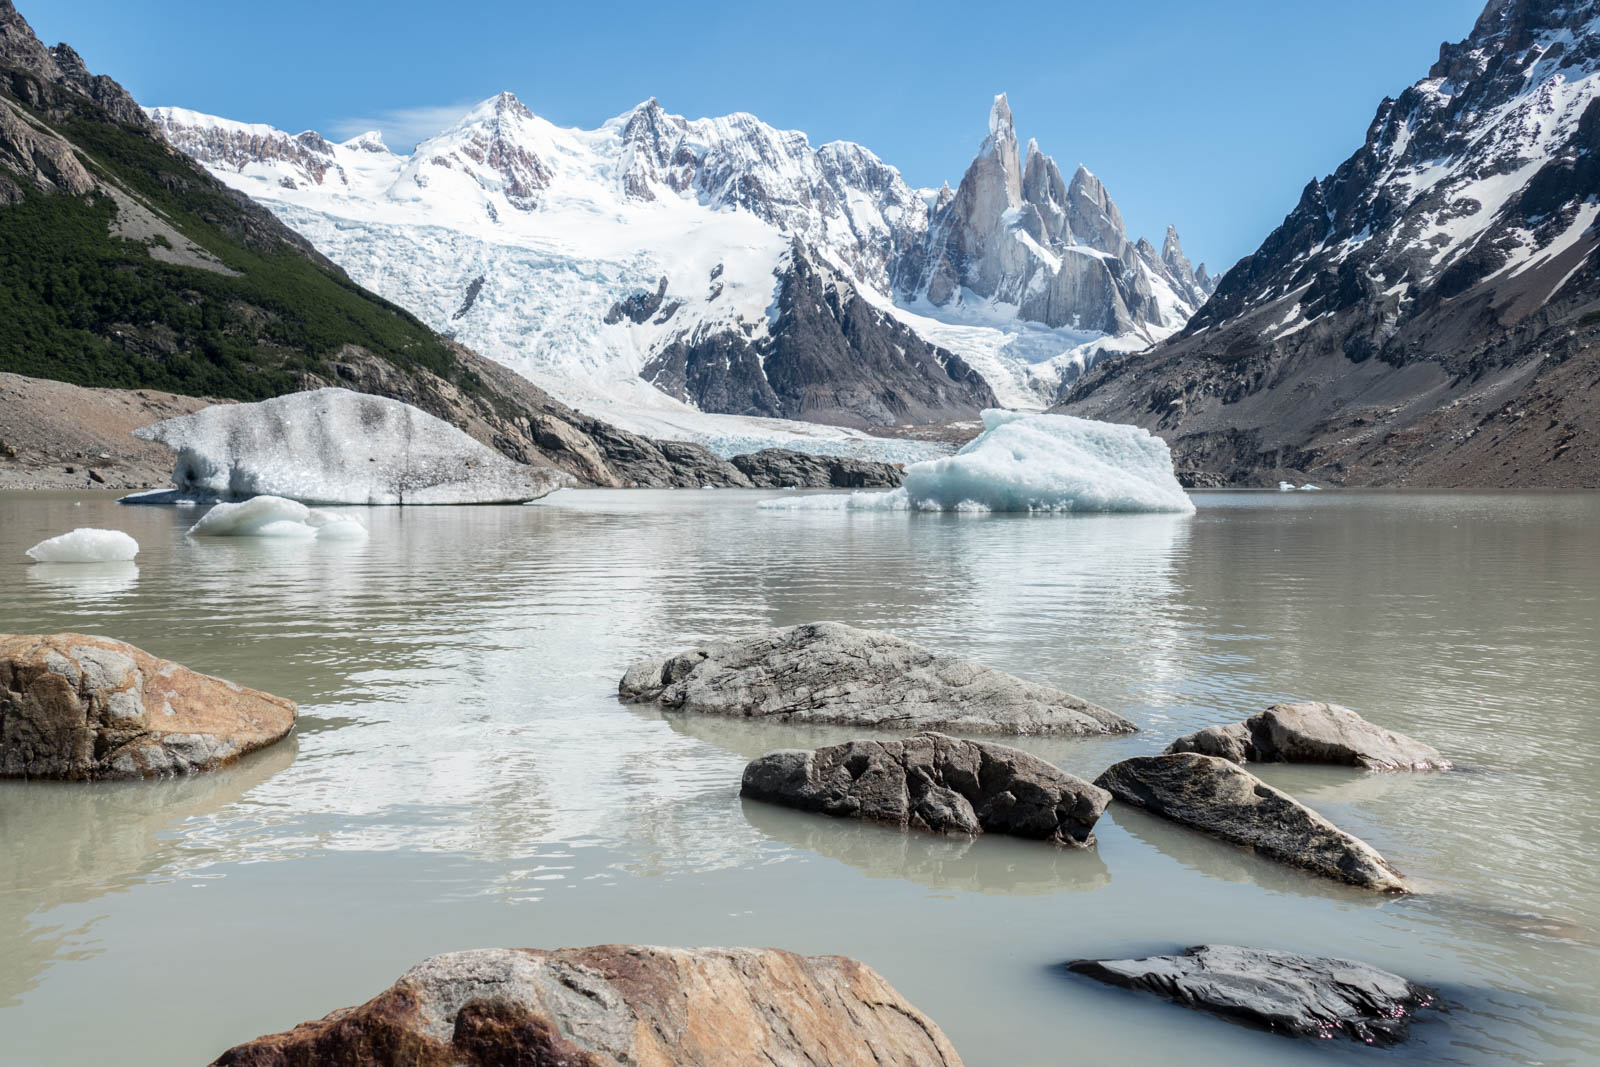 Laguna Torres with the Cerro Torre in the background. A disappointment of the hike was how murky the water in the laguna is, unlike the beautiful turquoise glacial water in most other lakes. Not sure why this is so for Laguna Torre.